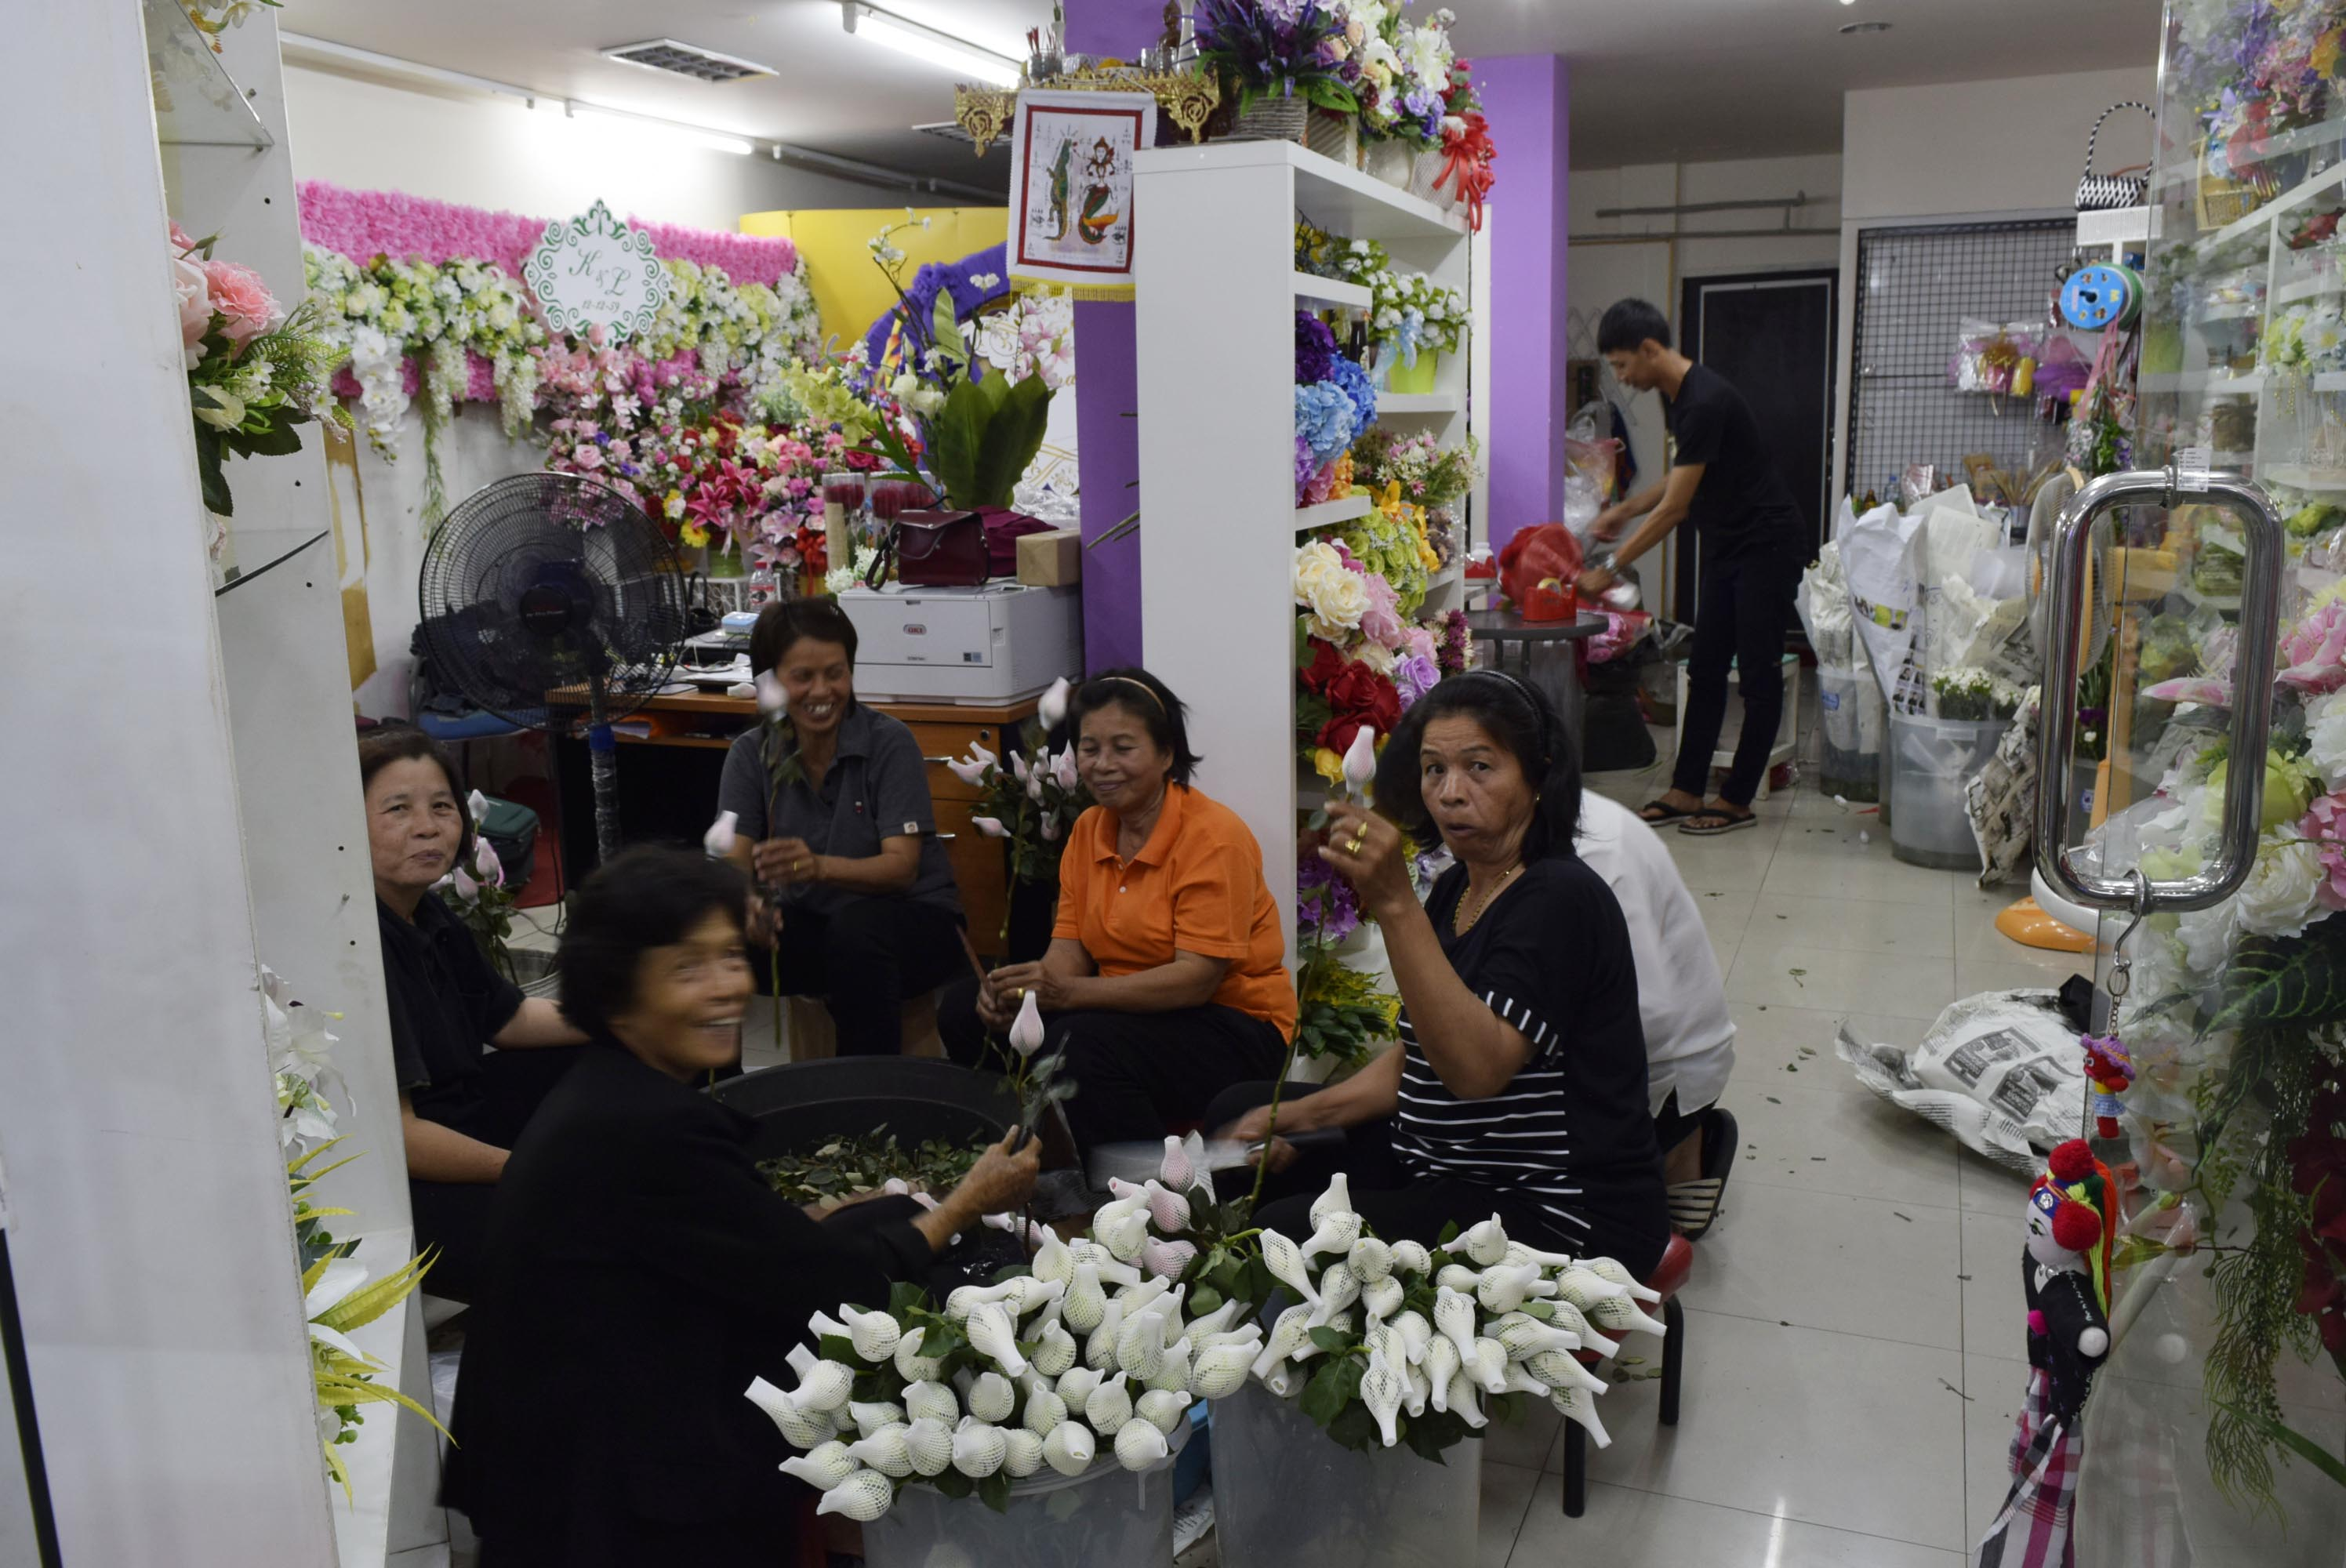 Industrious women are hard at work preparing flowers for Valentine's Day.